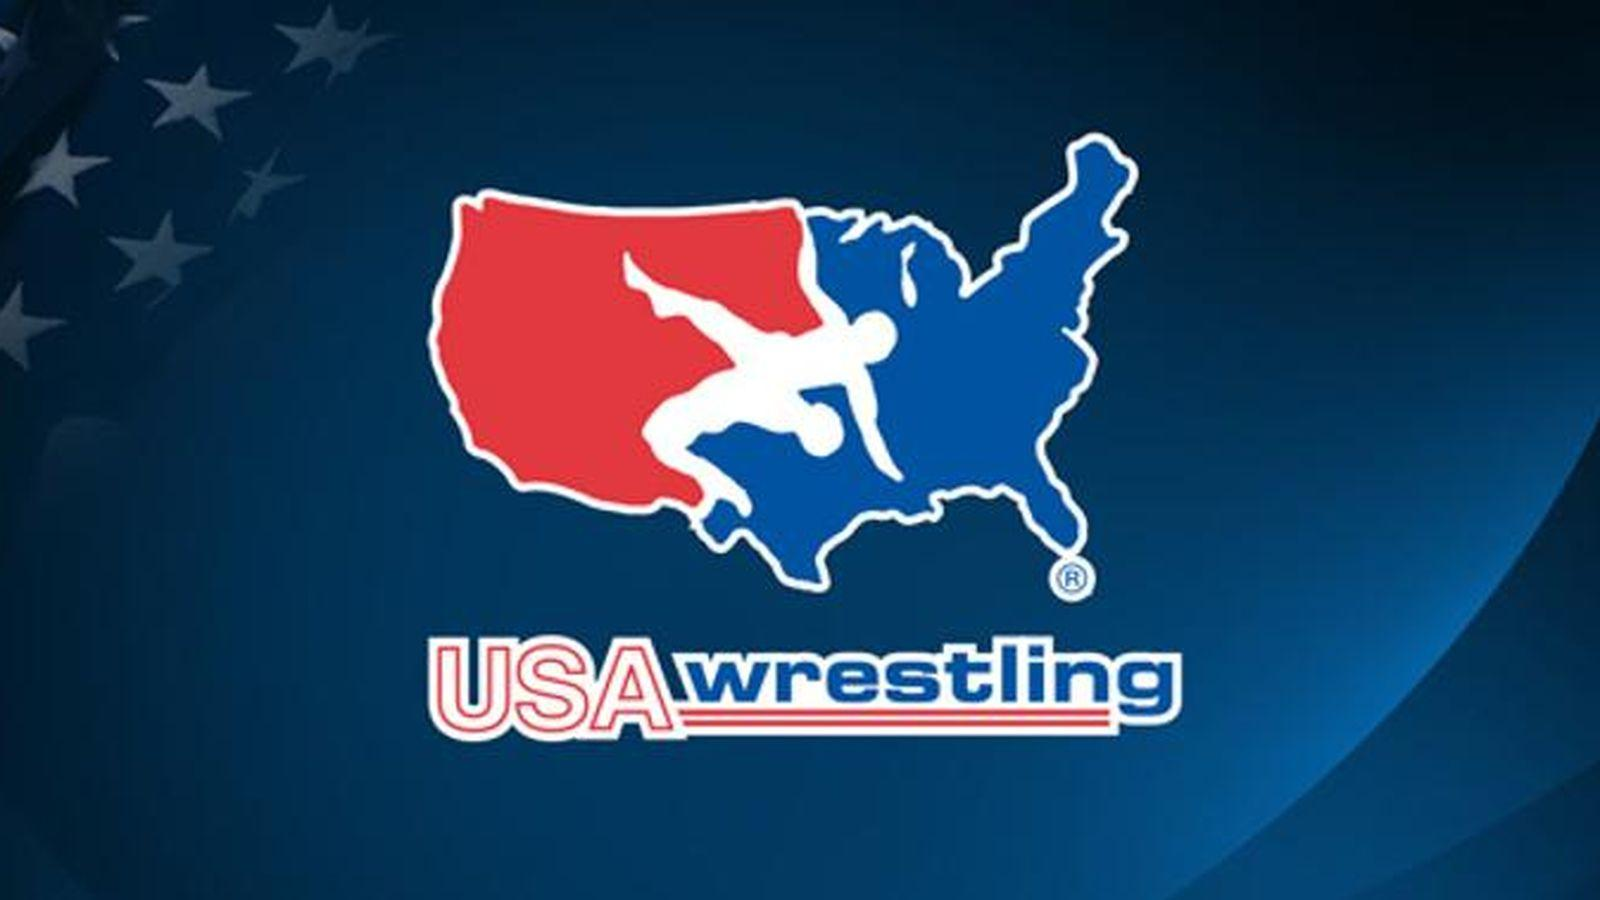 usa wrestling wallpapers wallpaper cave usa wrestling wallpapers wallpaper cave